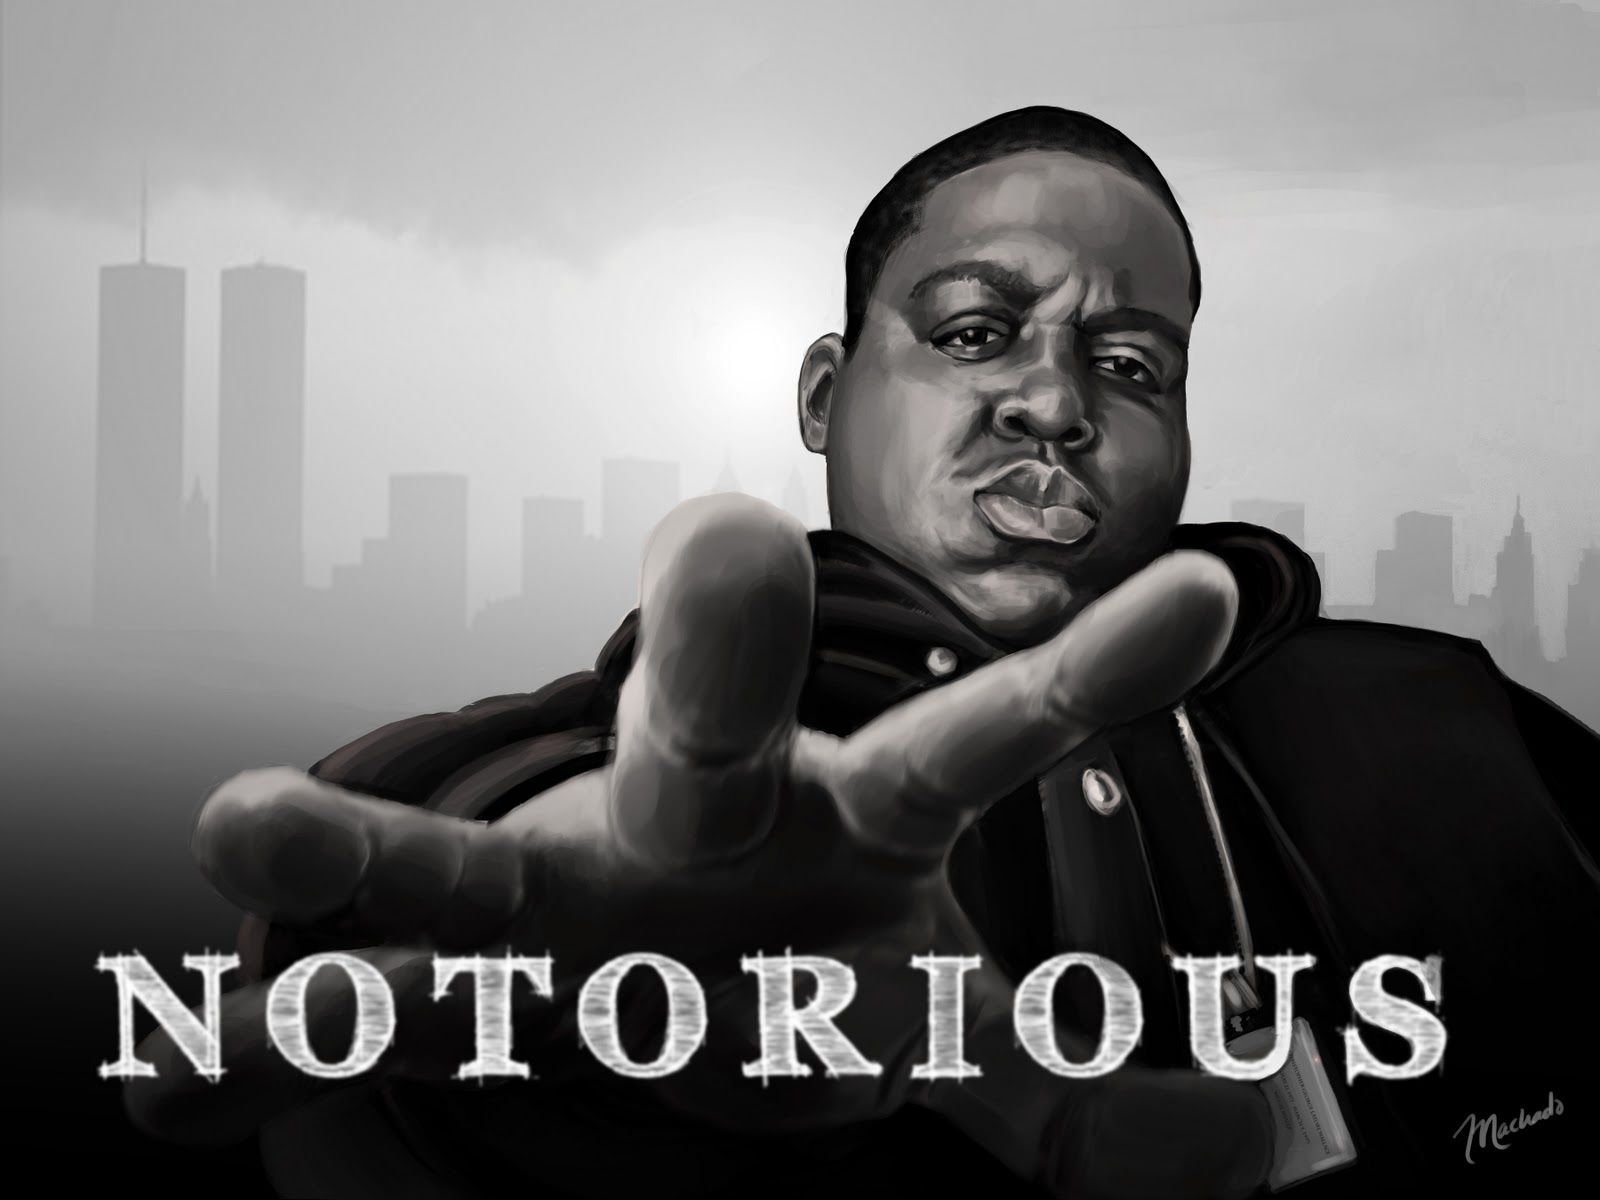 The Notorious BIG Images BROOKLYNS FYNEST HD Wallpaper And Background Photos